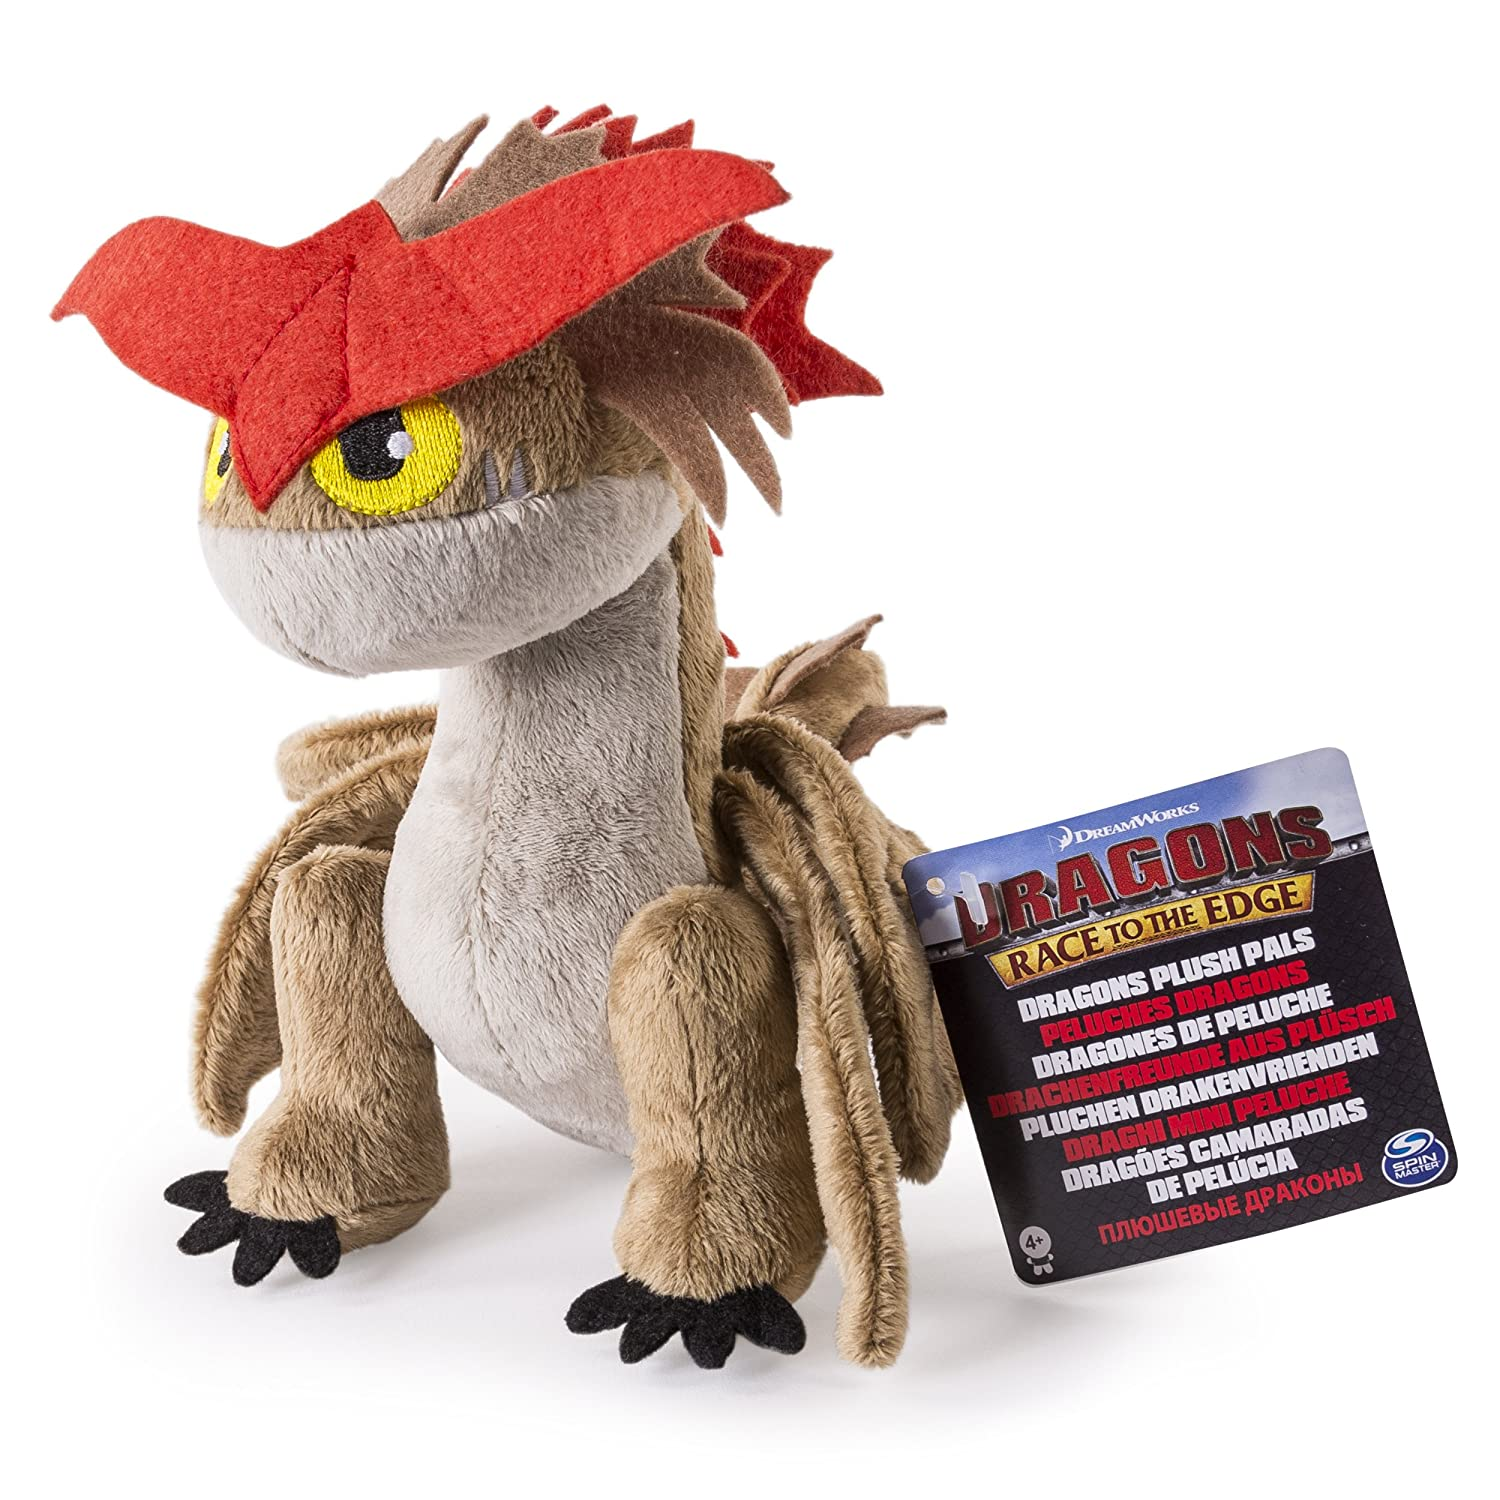 "Amazon.com: DreamWorks Dragons Race To The Edge – 8"" Premium Plush – Cloudjumper: Toys & Games"